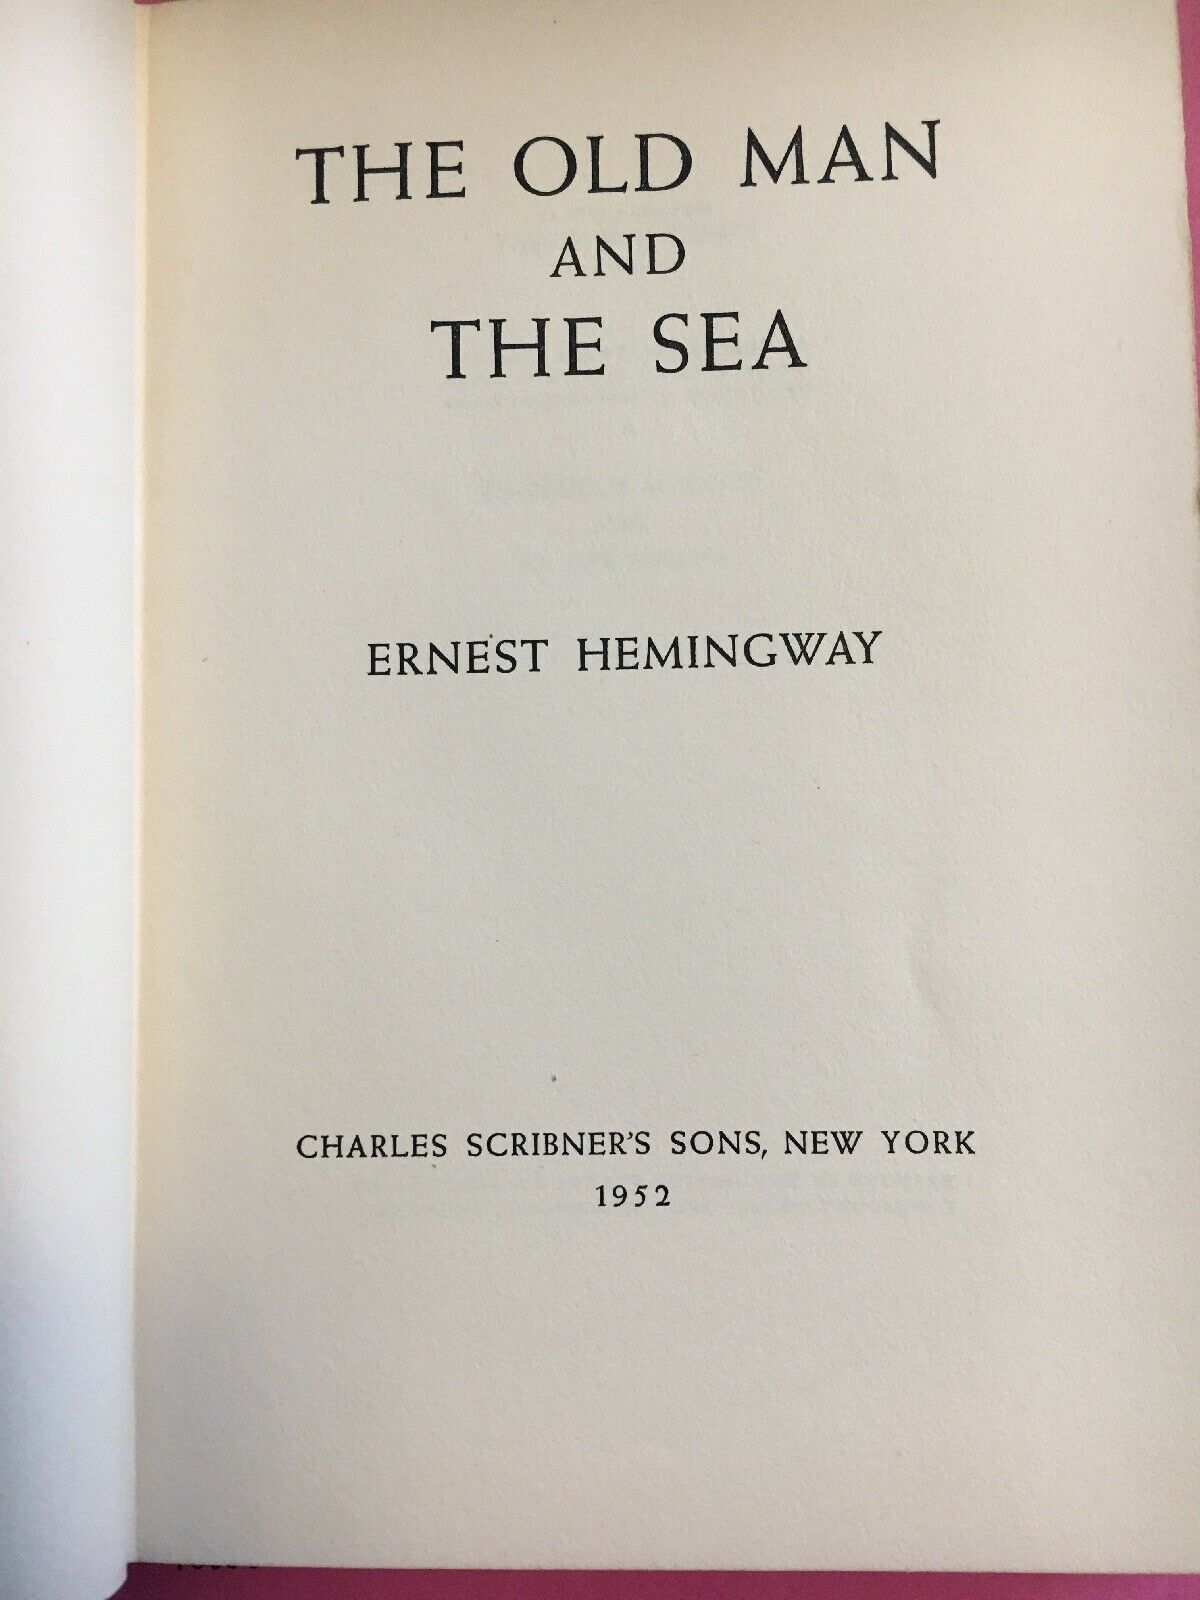 Forsale the old man and the sea ernest hemingway first